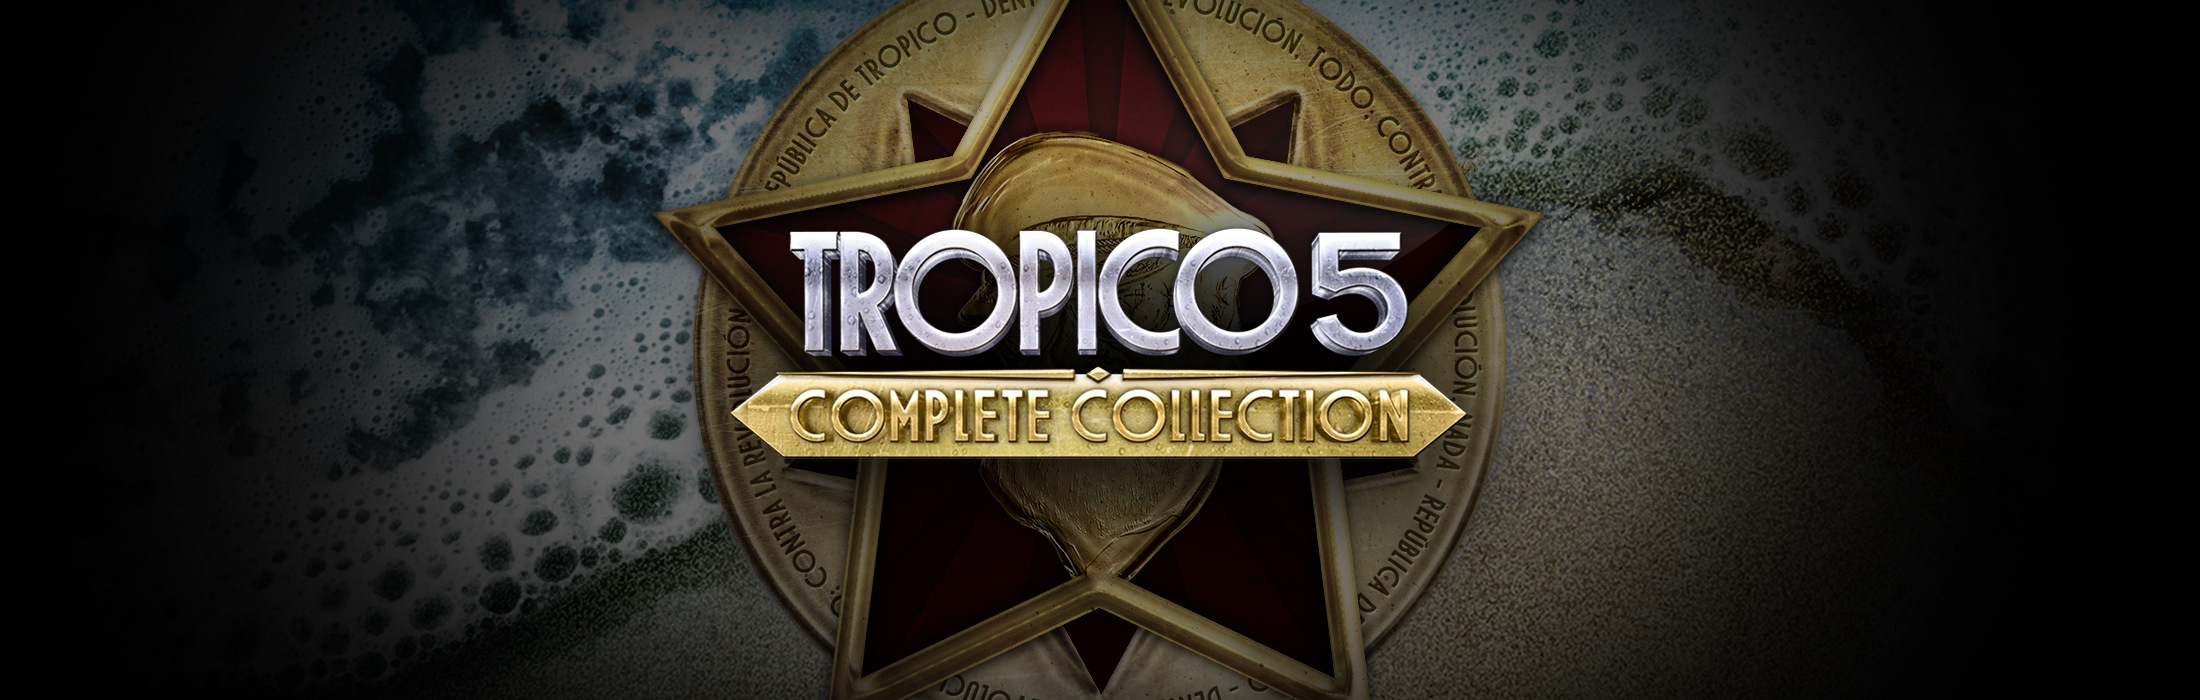 Tropico 5 - Complete Collection voor €4,29